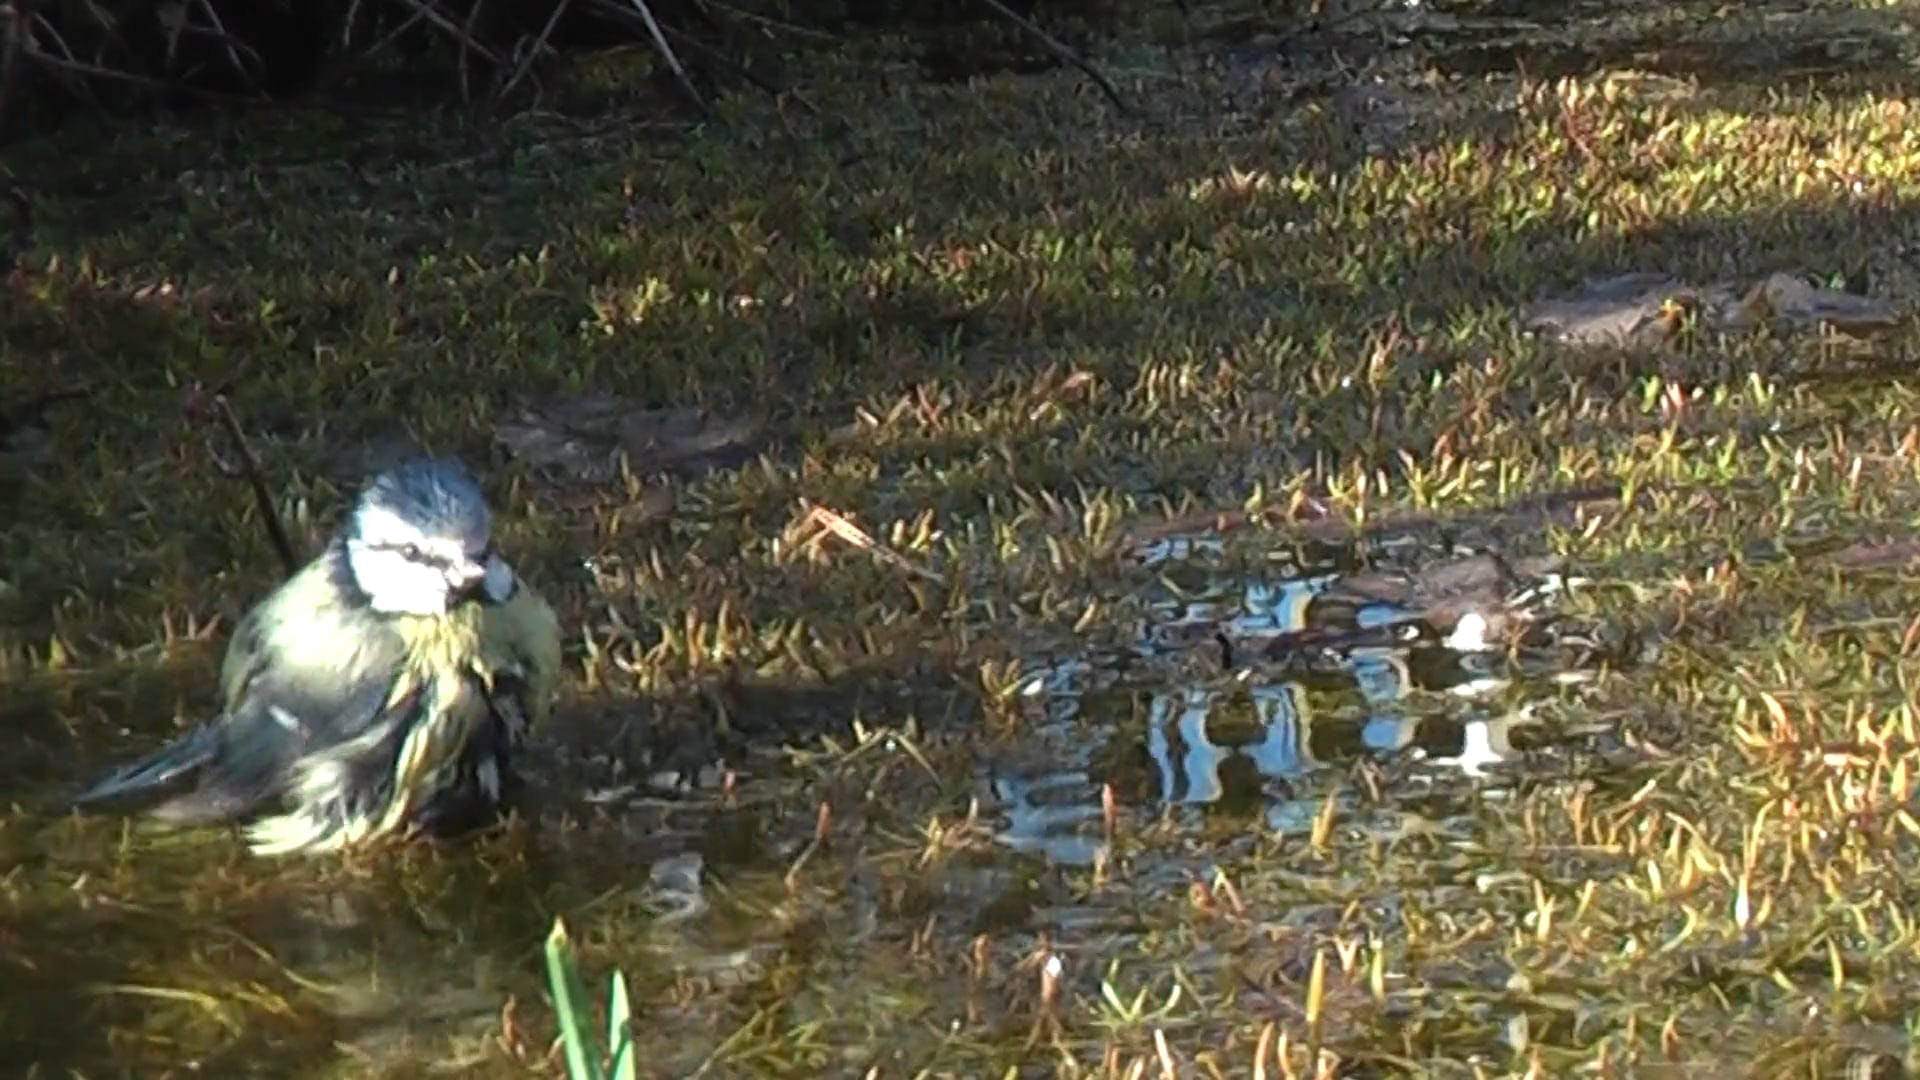 Bird Bathing On Puddle Of Water